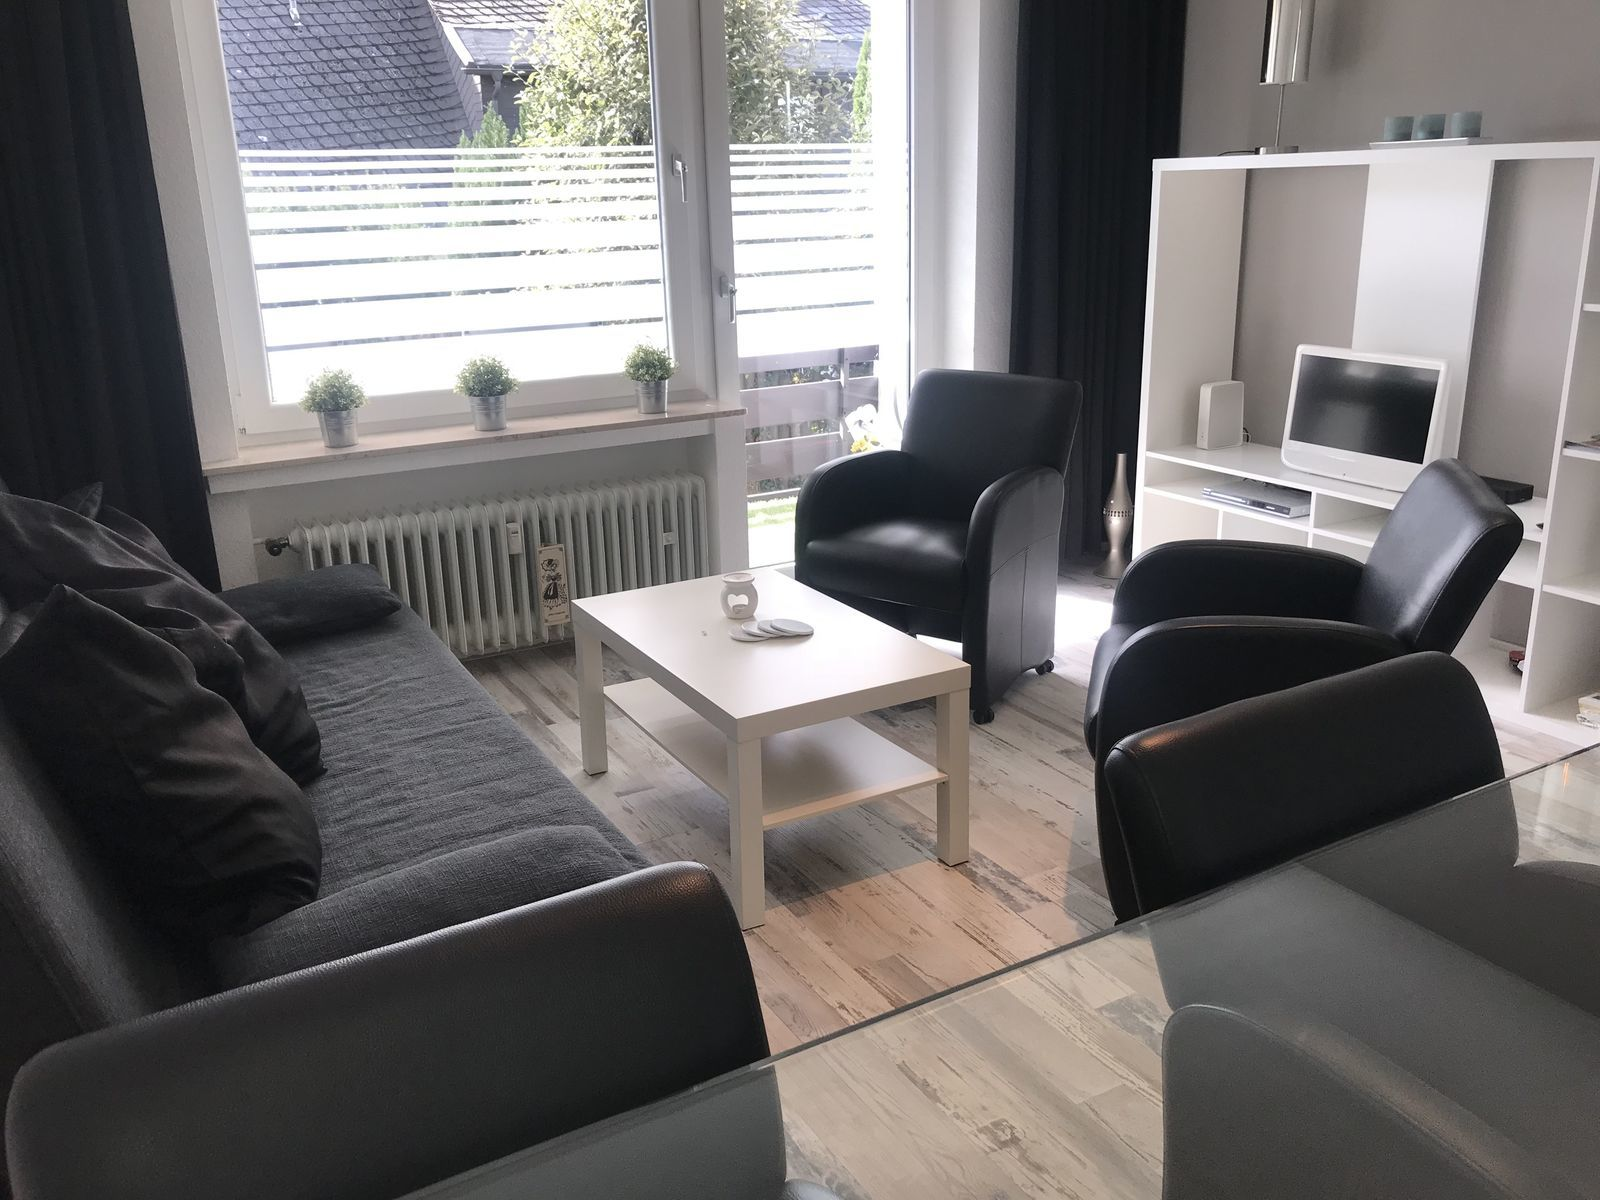 Apartment - Lenneblick 2-LS